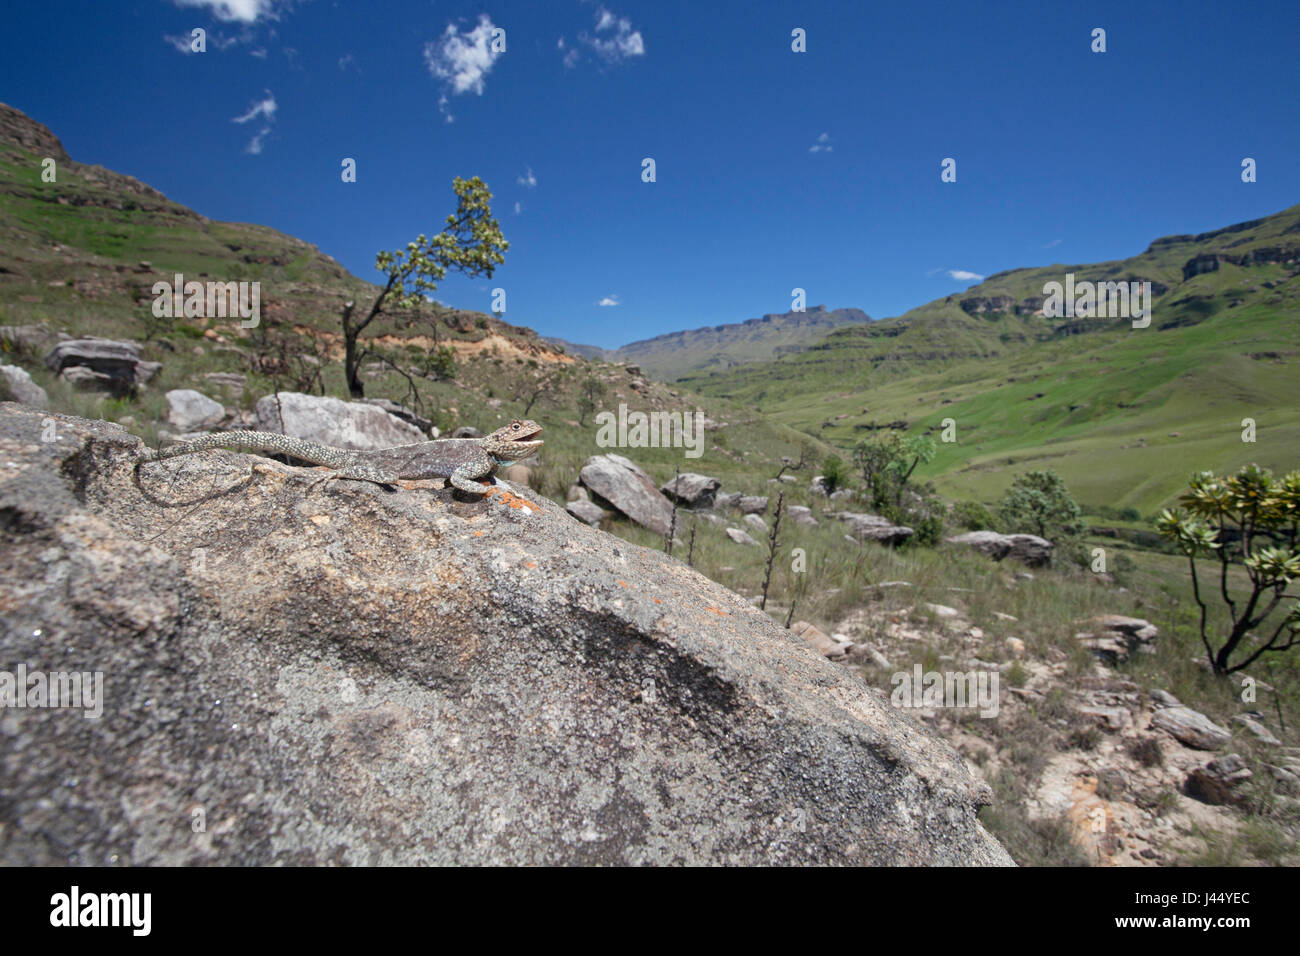 wideangle shot of a basking Southern rock agama - Stock Image